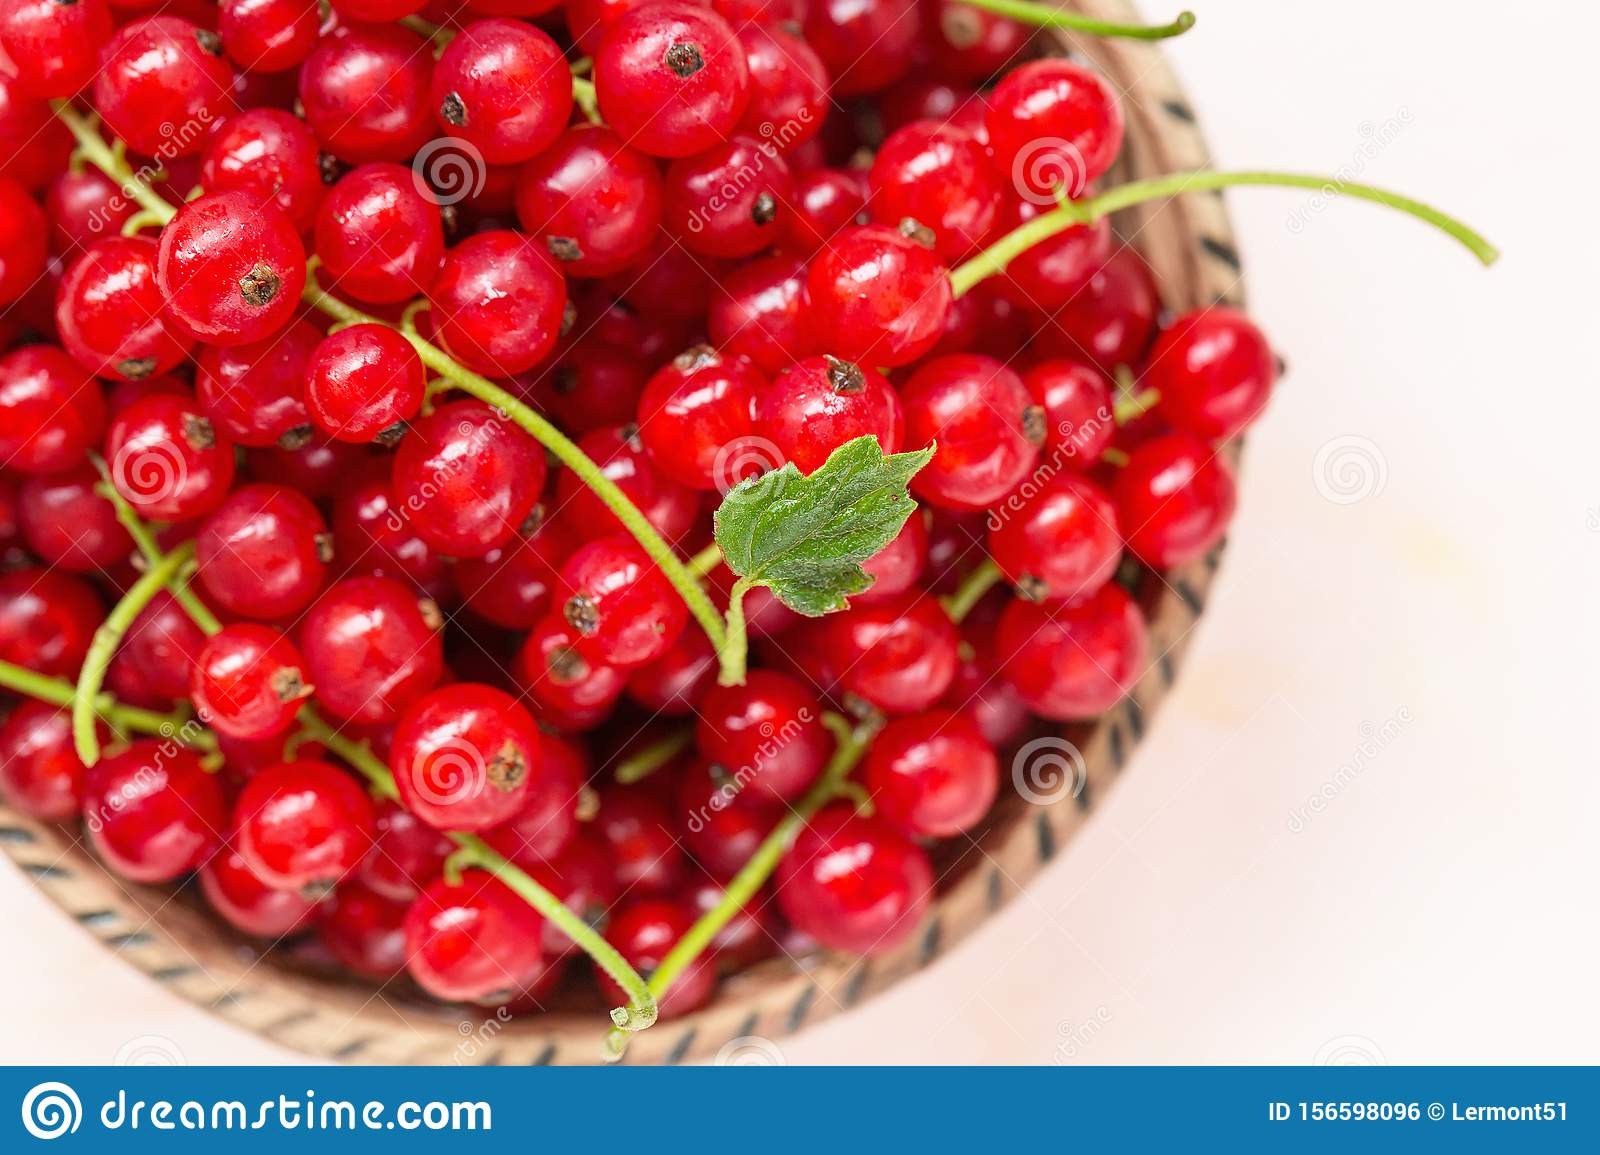 Fresh red currant berries in a bowl on a pink background